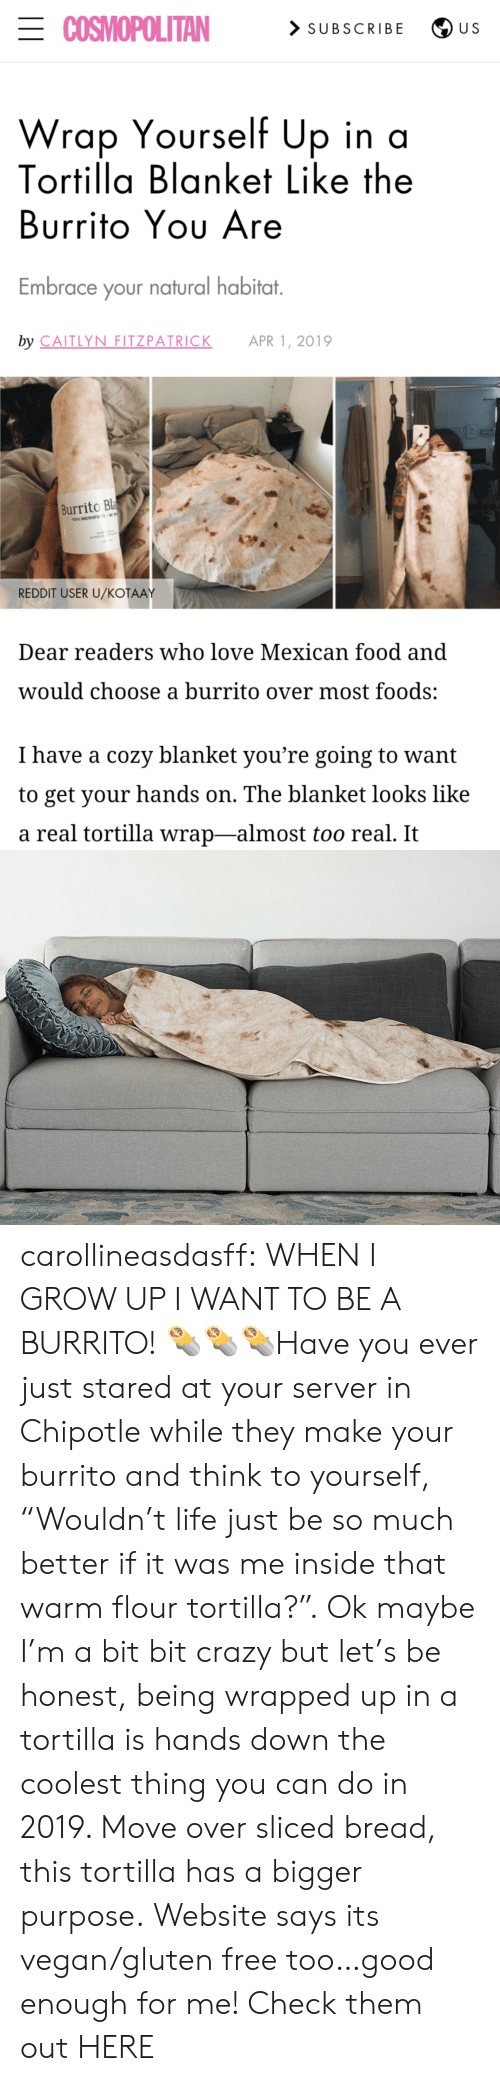 "Subscribe: ECOSMOPOLITAN  > SUBSCRIBE  U S  Wrap Yourself Up in a  Tortilla Blanket Like the  Burrito Yου Are  Embrace your natural habitat.  by CAITLYN FITZPATRICK  APR 1, 2019  Burrito Bla  100% MICROFE  REDDIT USER U/KOŤAAY  Dear readers who love Mexican food and  would choose a burrito over most foods:  I have a cozy blanket you're going to want  to get your hands on. The blanket looks like  a real tortilla wrap-almost too real. It carollineasdasff:  WHEN I GROW UP I WANT TO BE A BURRITO! 🌯🌯🌯Have you ever just stared at your server in Chipotle while they make your burrito and think to yourself, ""Wouldn't life just be so much better if it was me inside that warm flour tortilla?"". Ok maybe I'm a bit bit crazy but let's be honest, being wrapped up in a tortilla is hands down the coolest thing you can do in 2019. Move over sliced bread, this tortilla has a bigger purpose. Website says its vegan/gluten free too…good enough for me! Check them out HERE"